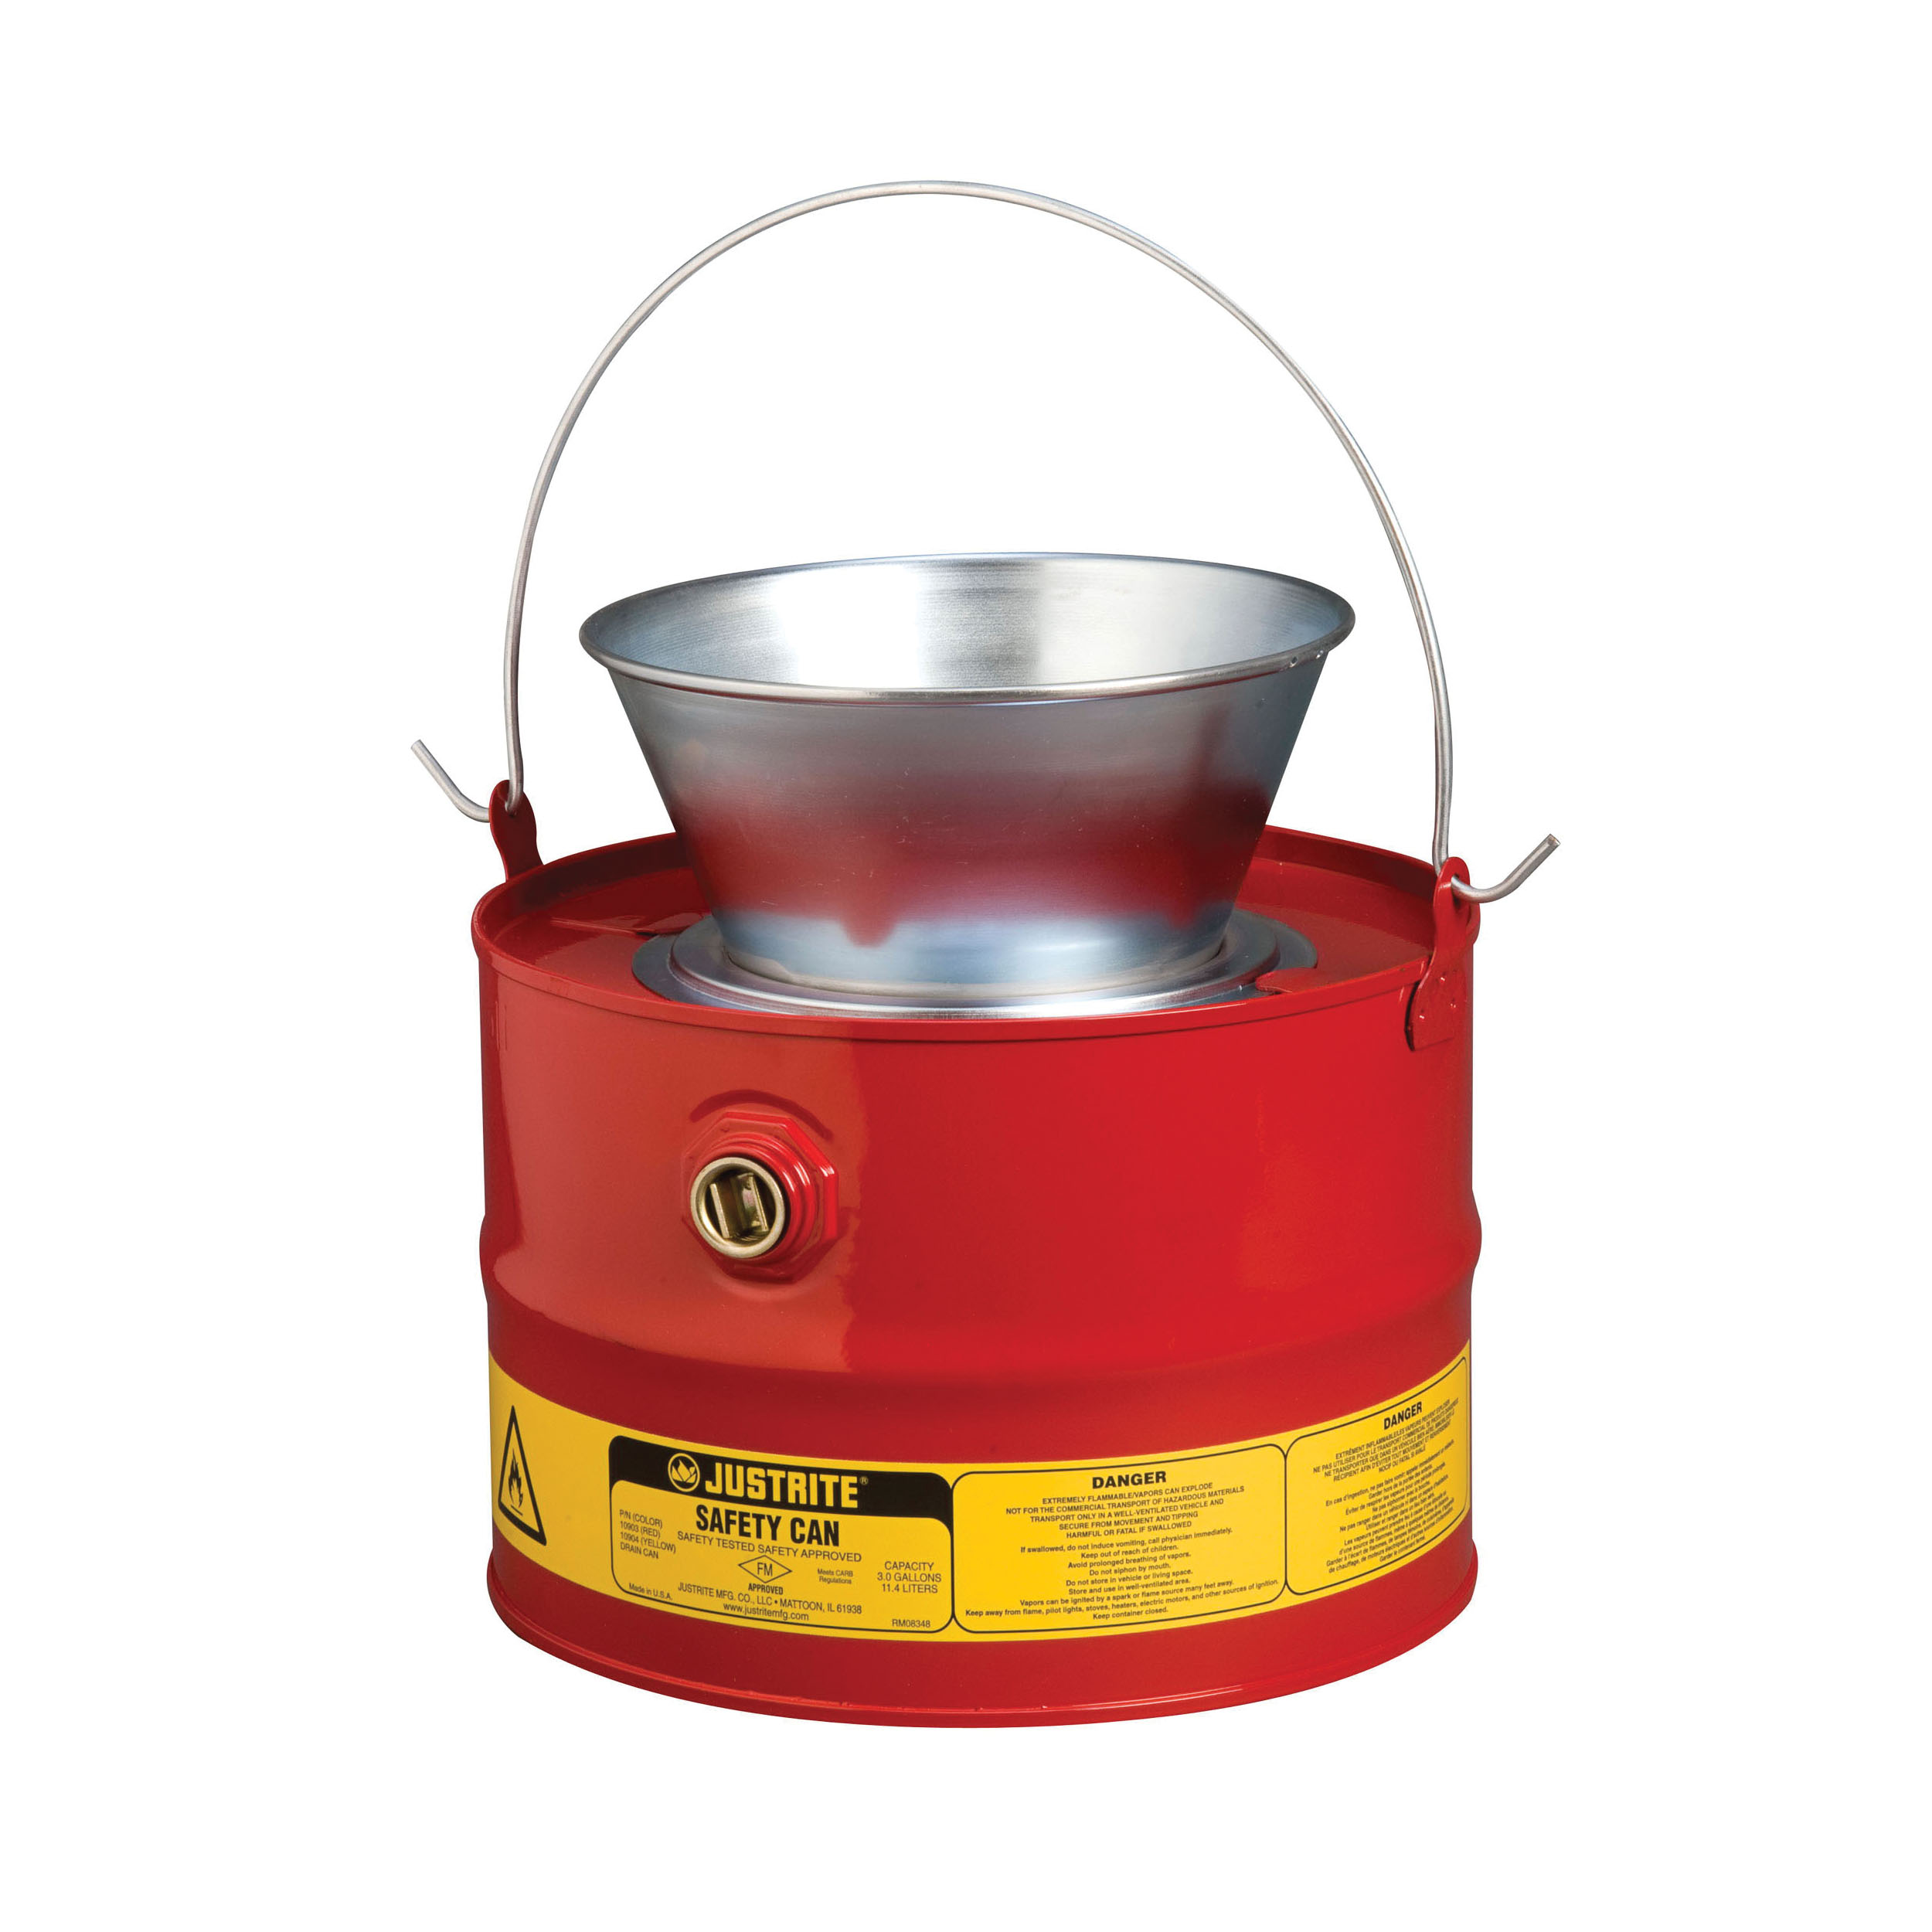 Justrite® 10903 Drain Can With Plated Steel Funnel, 3 gal Capacity, 11-5/8 in Dia, 12-1/4 in H, Steel, Red, FM Approved